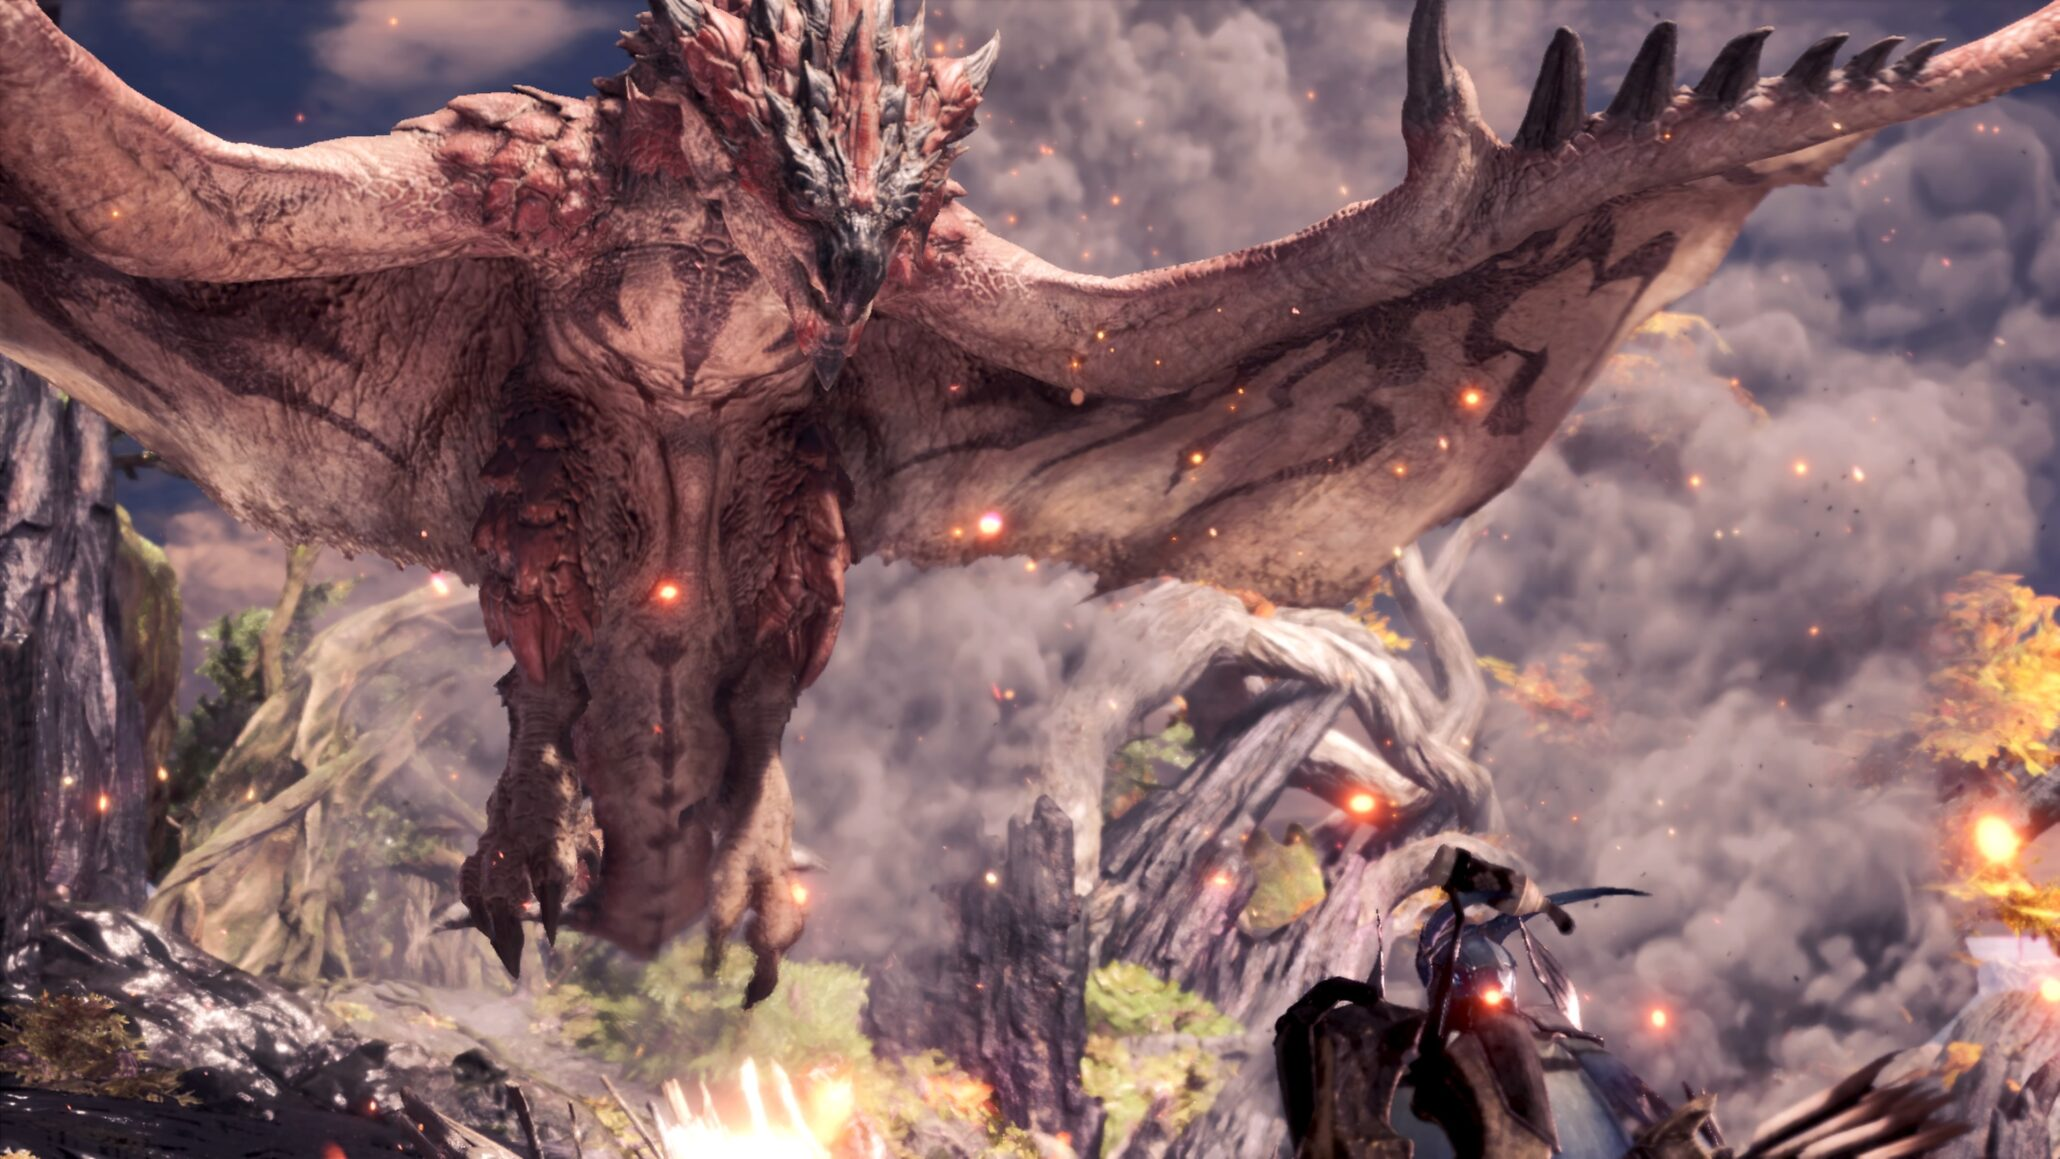 New PC Monster Hunter World Mod Shows Monsters HP and Team